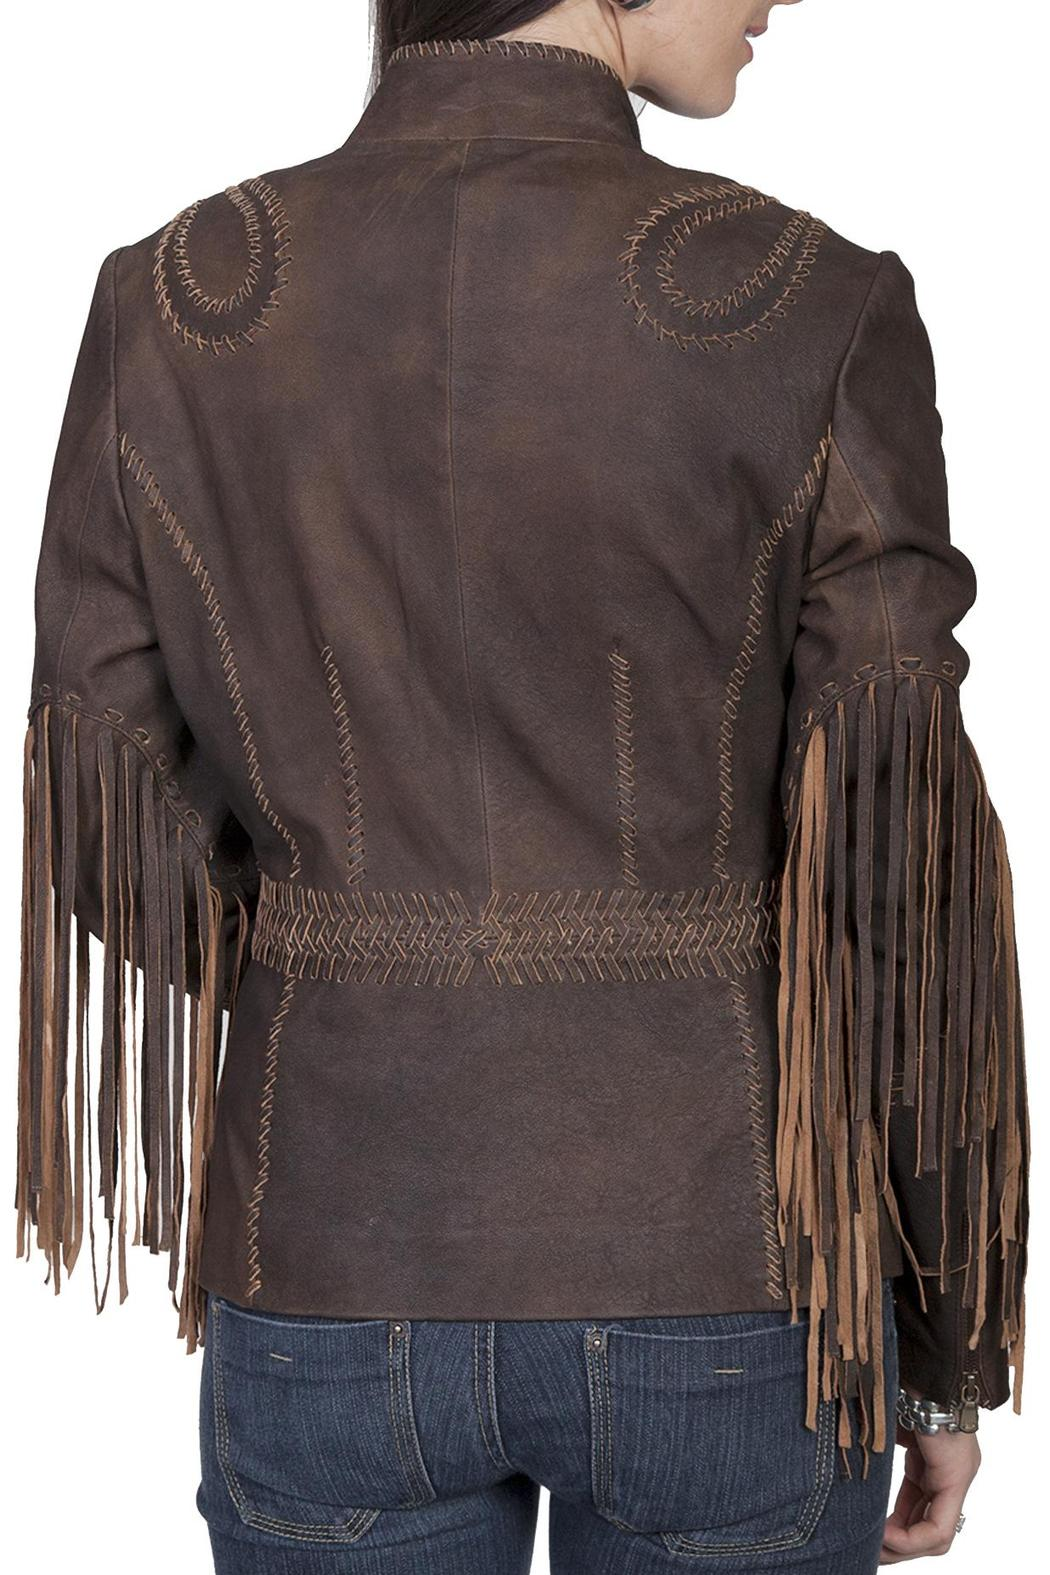 Scully Leather Fringe Leather Jacket - Front Full Image